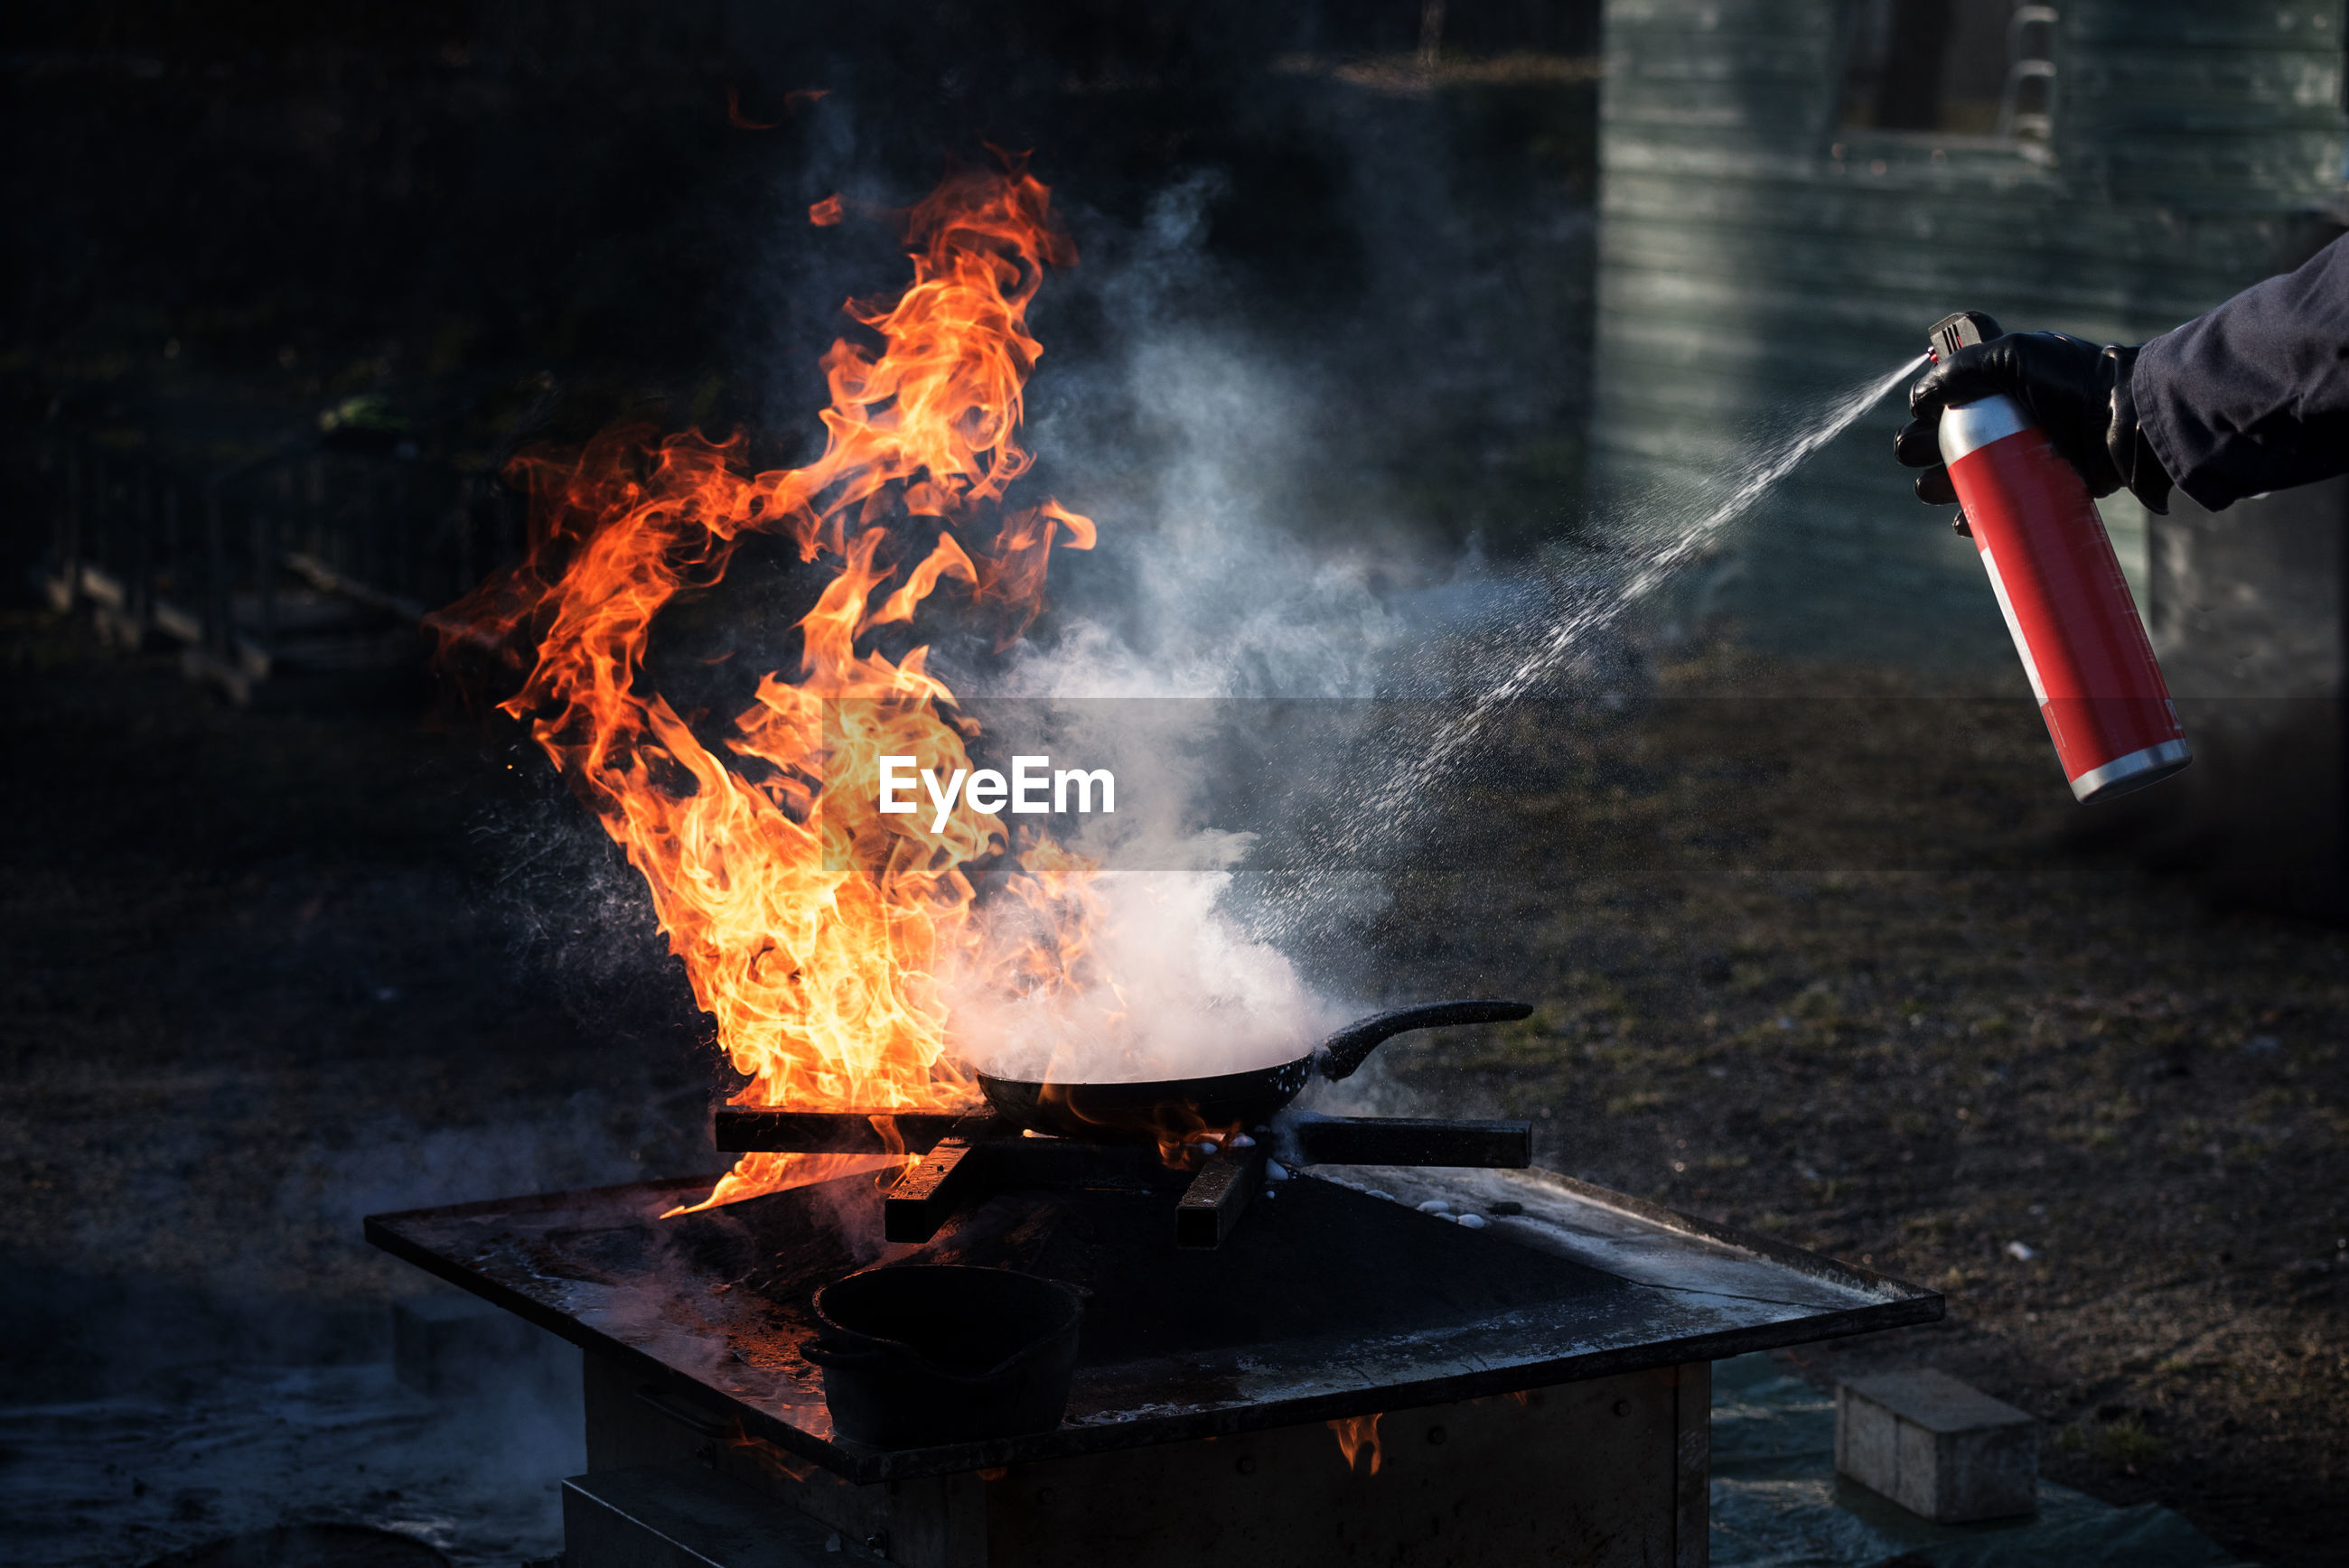 Close-up of cropped hand extinguishing fire on barbecue grill